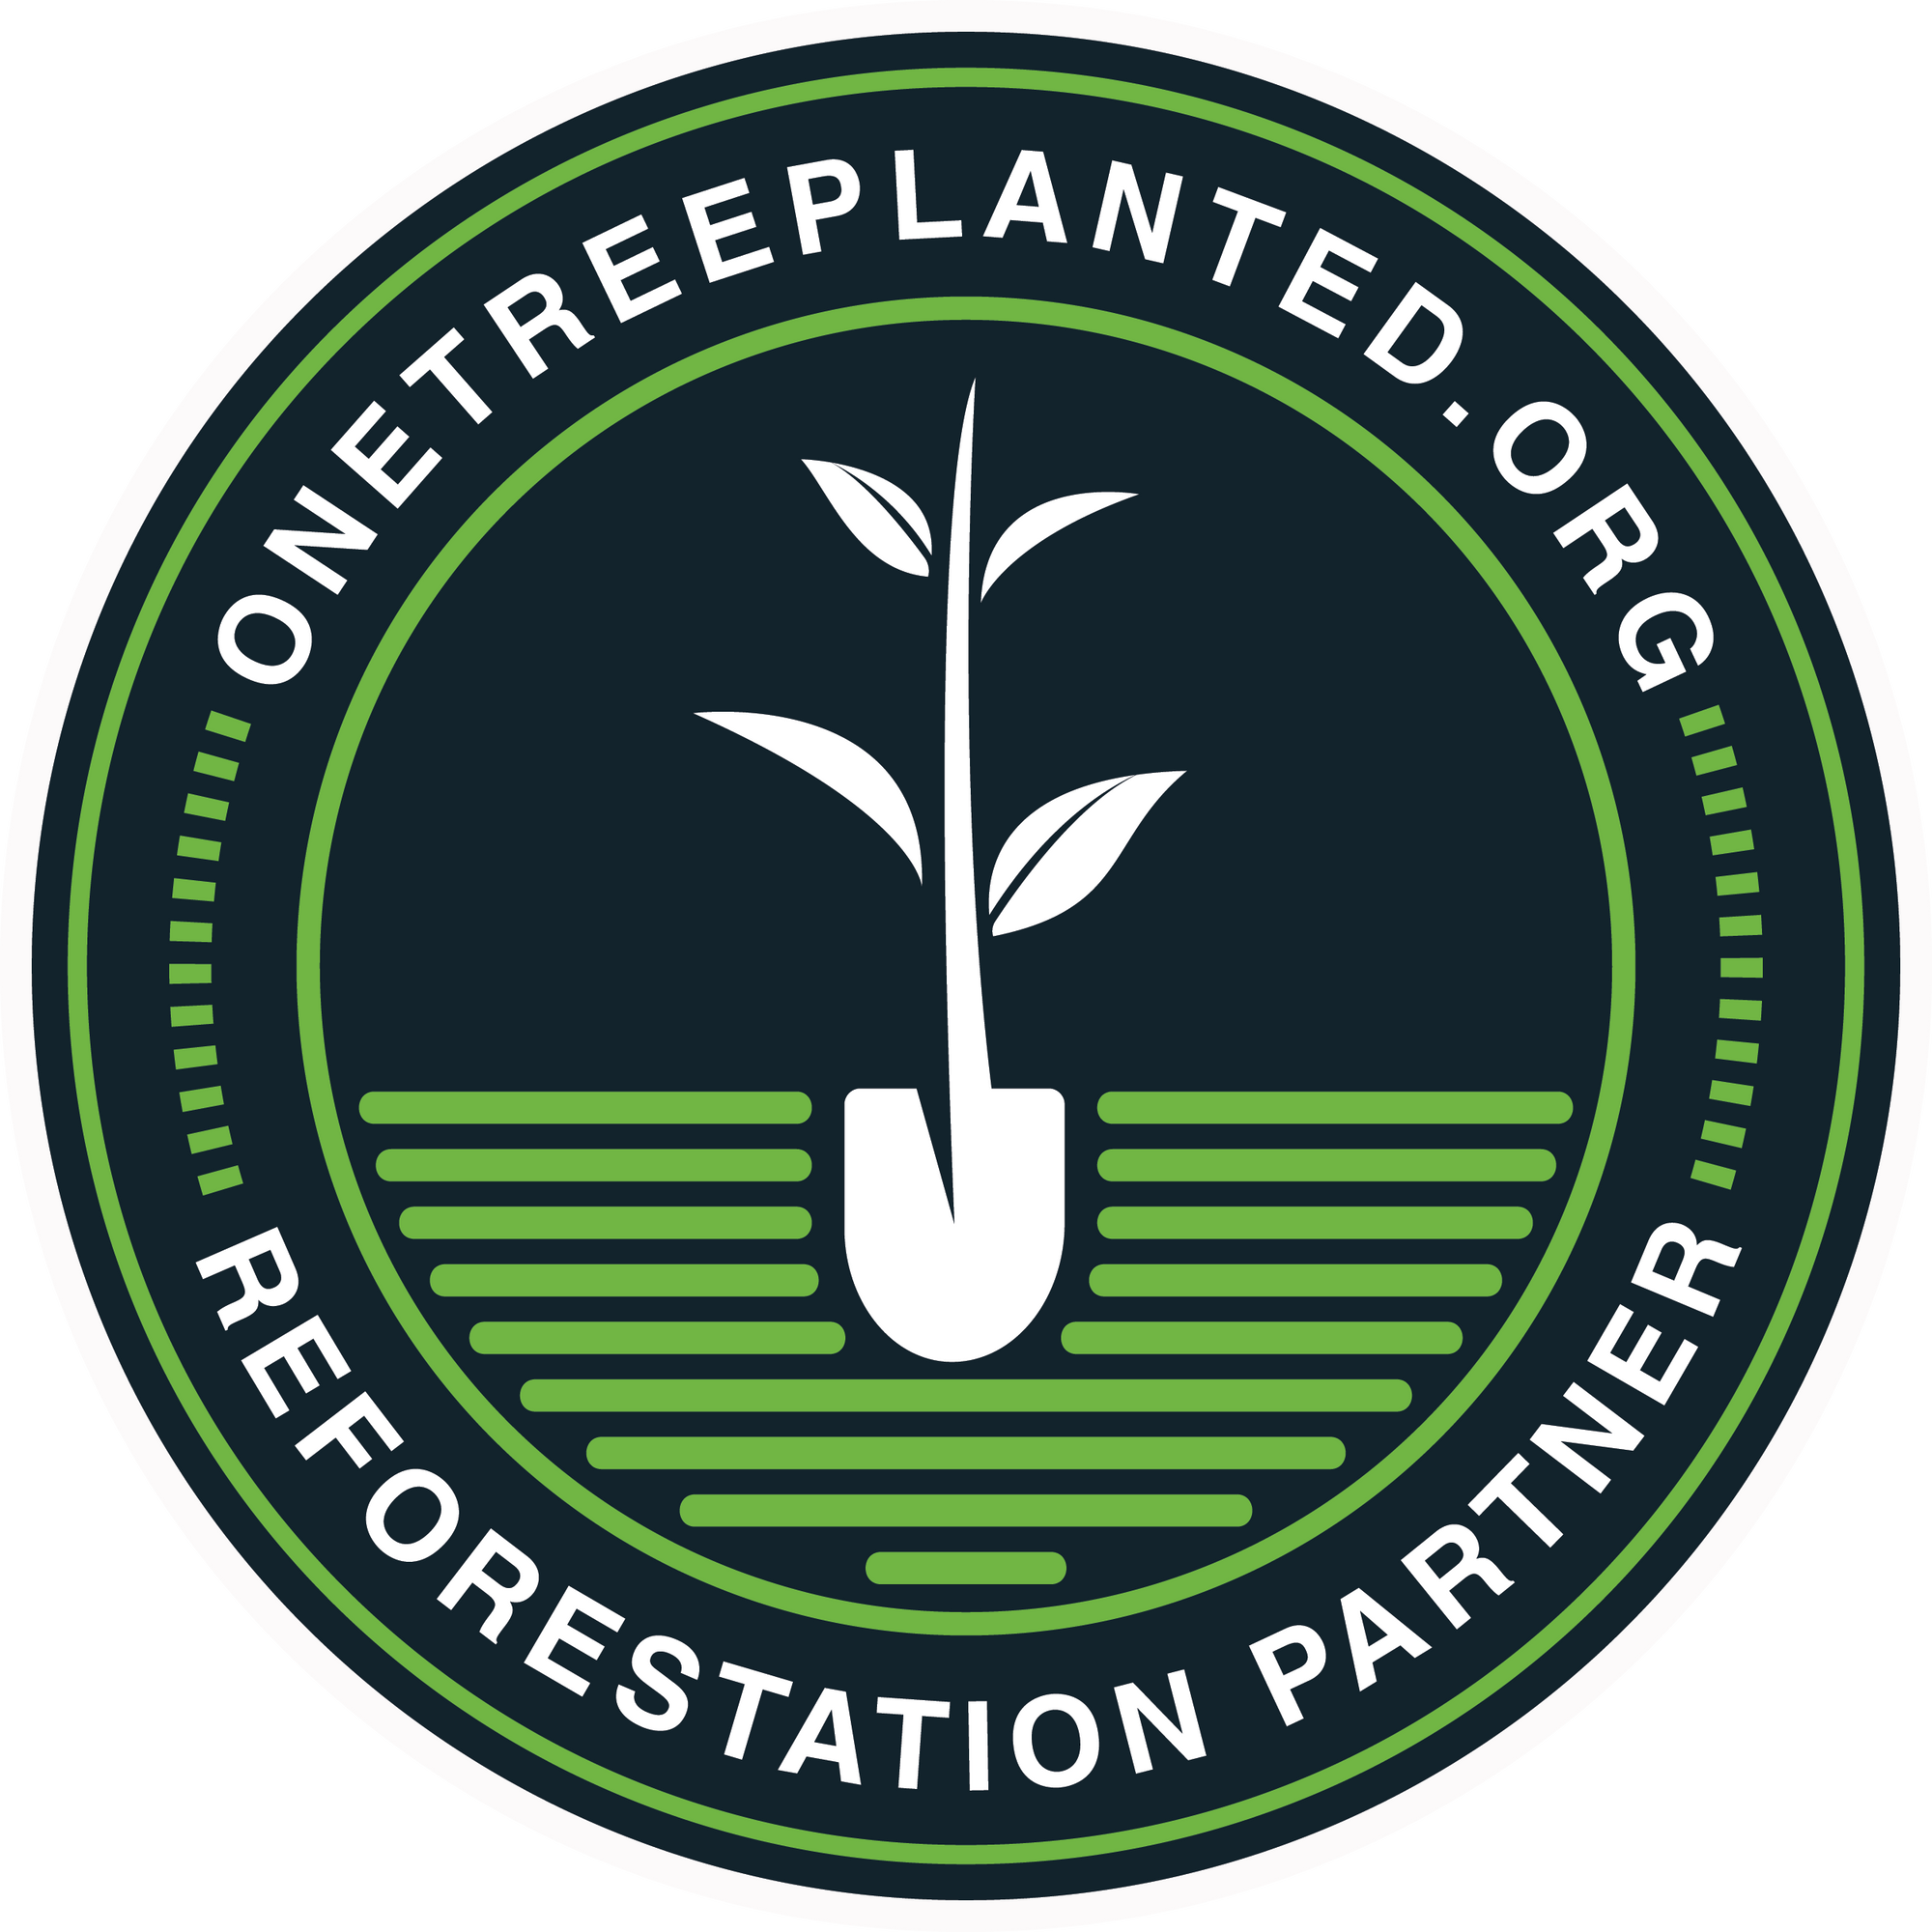 One tree planted Partnership - save our planet